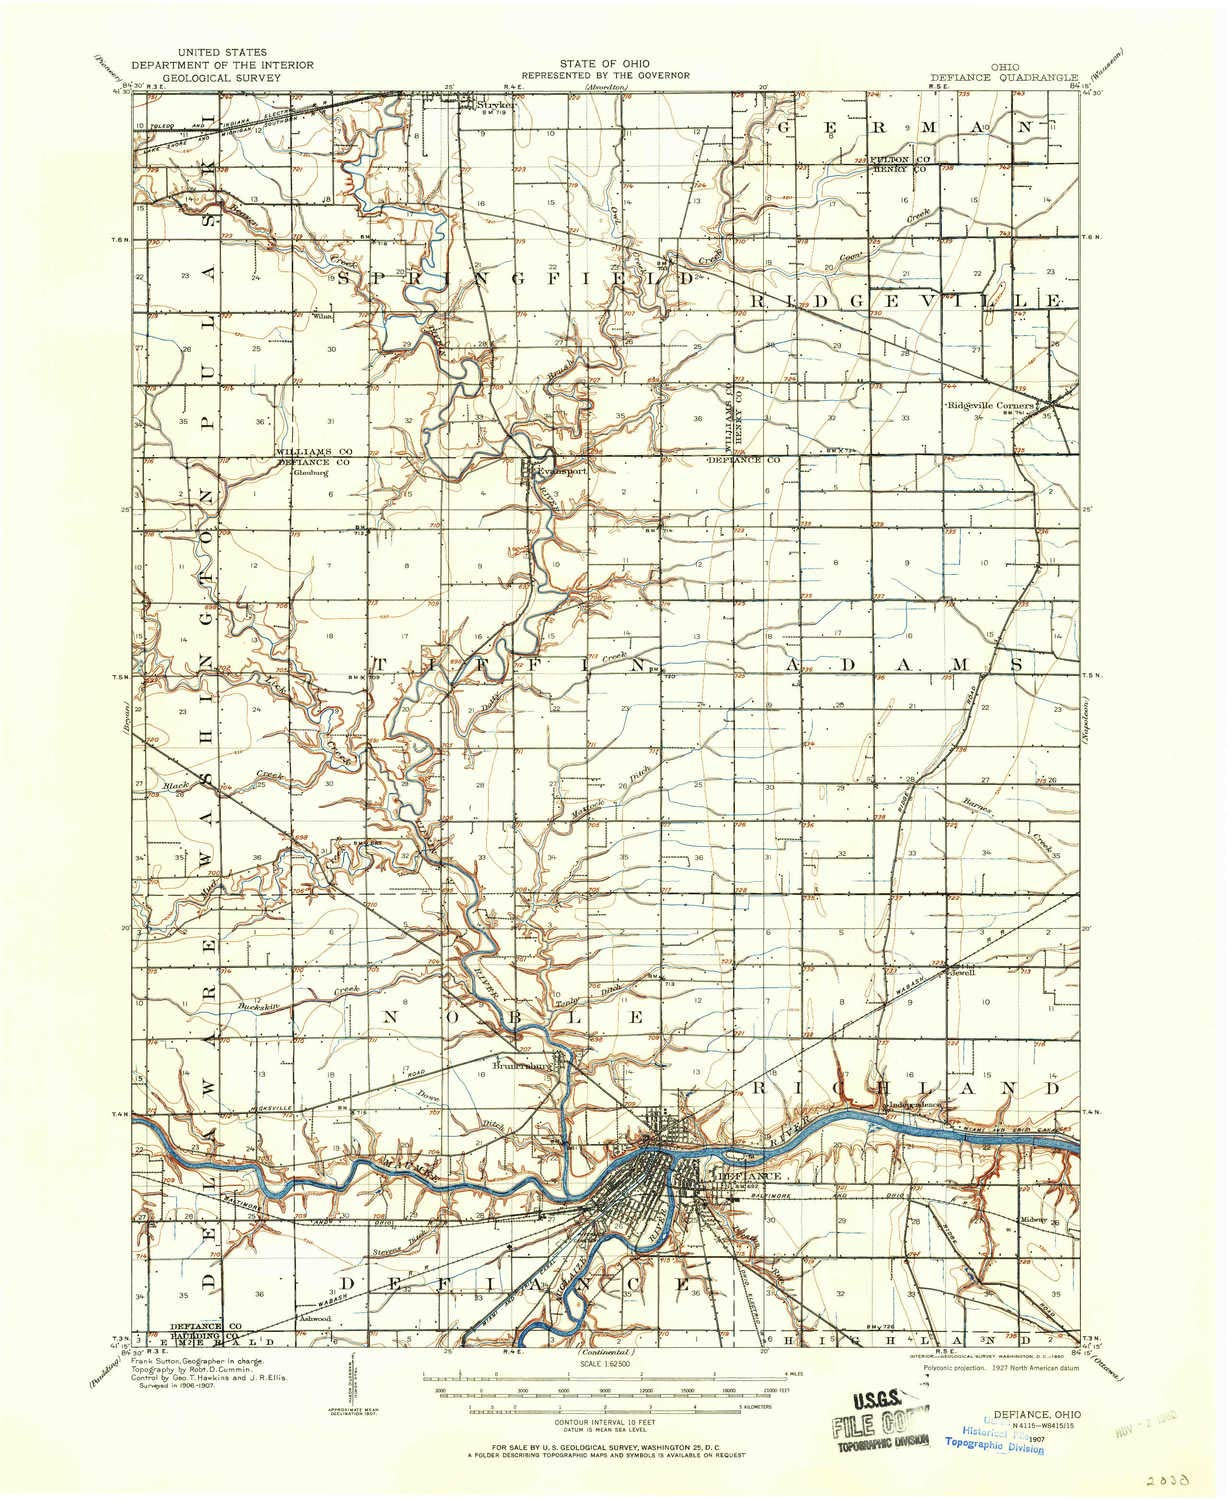 Amazon.com : YellowMaps Defiance OH topo map, 1:62500 Scale ... on defiance missouri, mount gilead map, jonesville virginia map, defiance michigan map, defiance online map, defiance county map, fort defiance arizona map, defiance san francisco map, defiance indiana map, defiance oh,